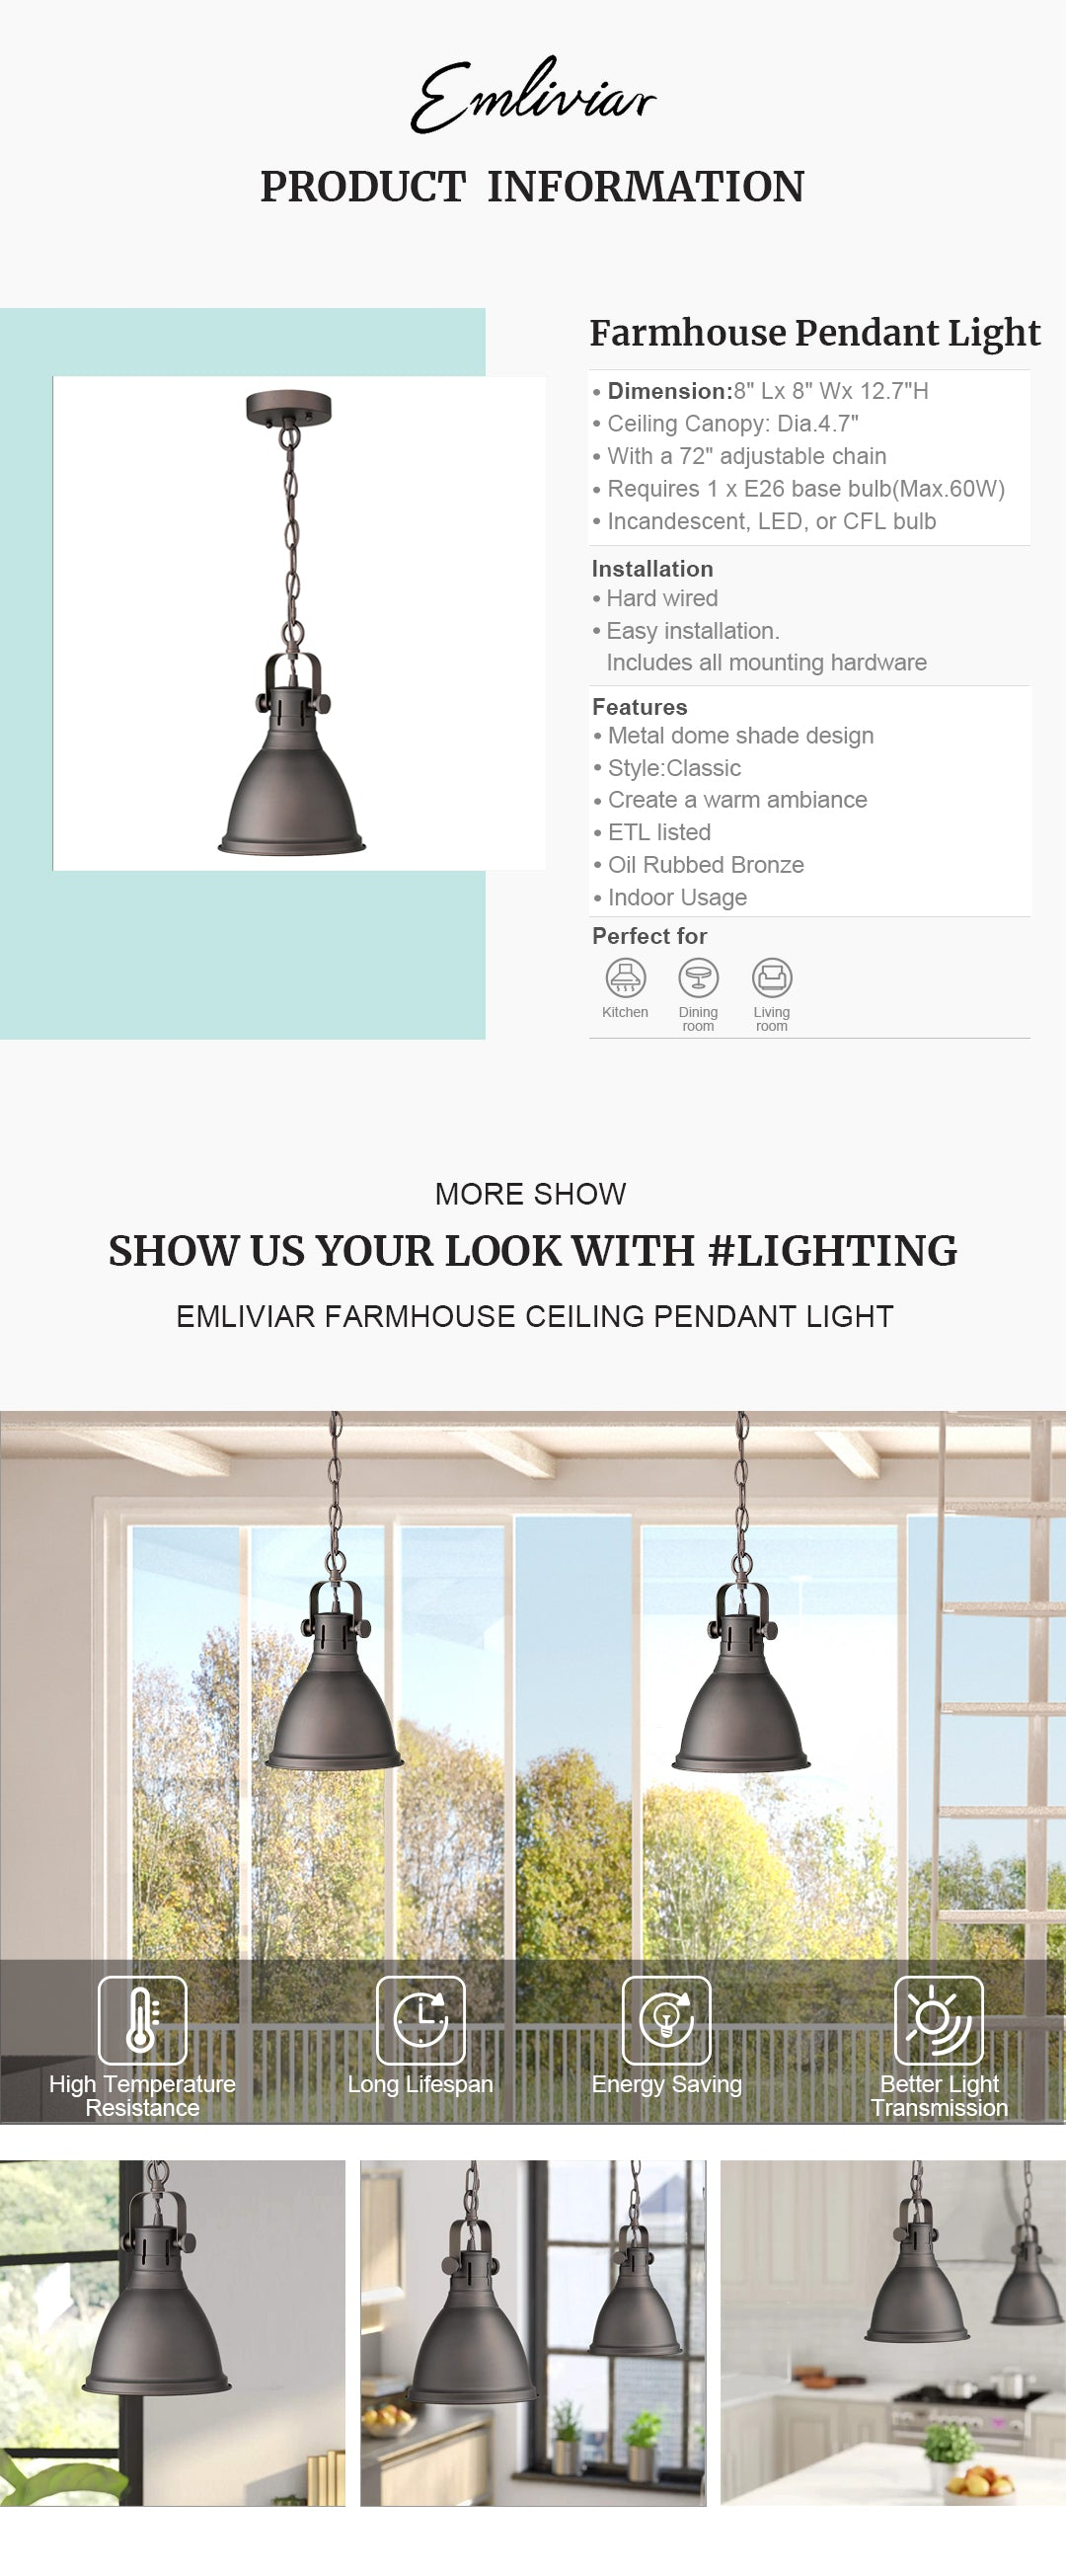 """Vintage hanging light fixture features sturdy metal dome shade design, with oil rubbed bronze finish, create a warm ambiance to any space Easy installation. Includes all mounting hardware. This ceiling hanging light is sloped ceiling compatible, suit the needs of your space ETL listed with a one-year warranty. This farmhouse pendant light is perfect for kitchen, dining room, living room, foyer, warehouse, cafe, club, bar and restaurant Hard wired. Requires 1 x E26 base bulb(Max.60W). Bulb NOT included. Available bulb type: incandescent, LED, or CFL bulb Dimension: 8"""" x 8"""" x 12.7""""(L x W x H); Ceiling Canopy: Dia.4.7""""; With a 72"""" adjustable chain"""